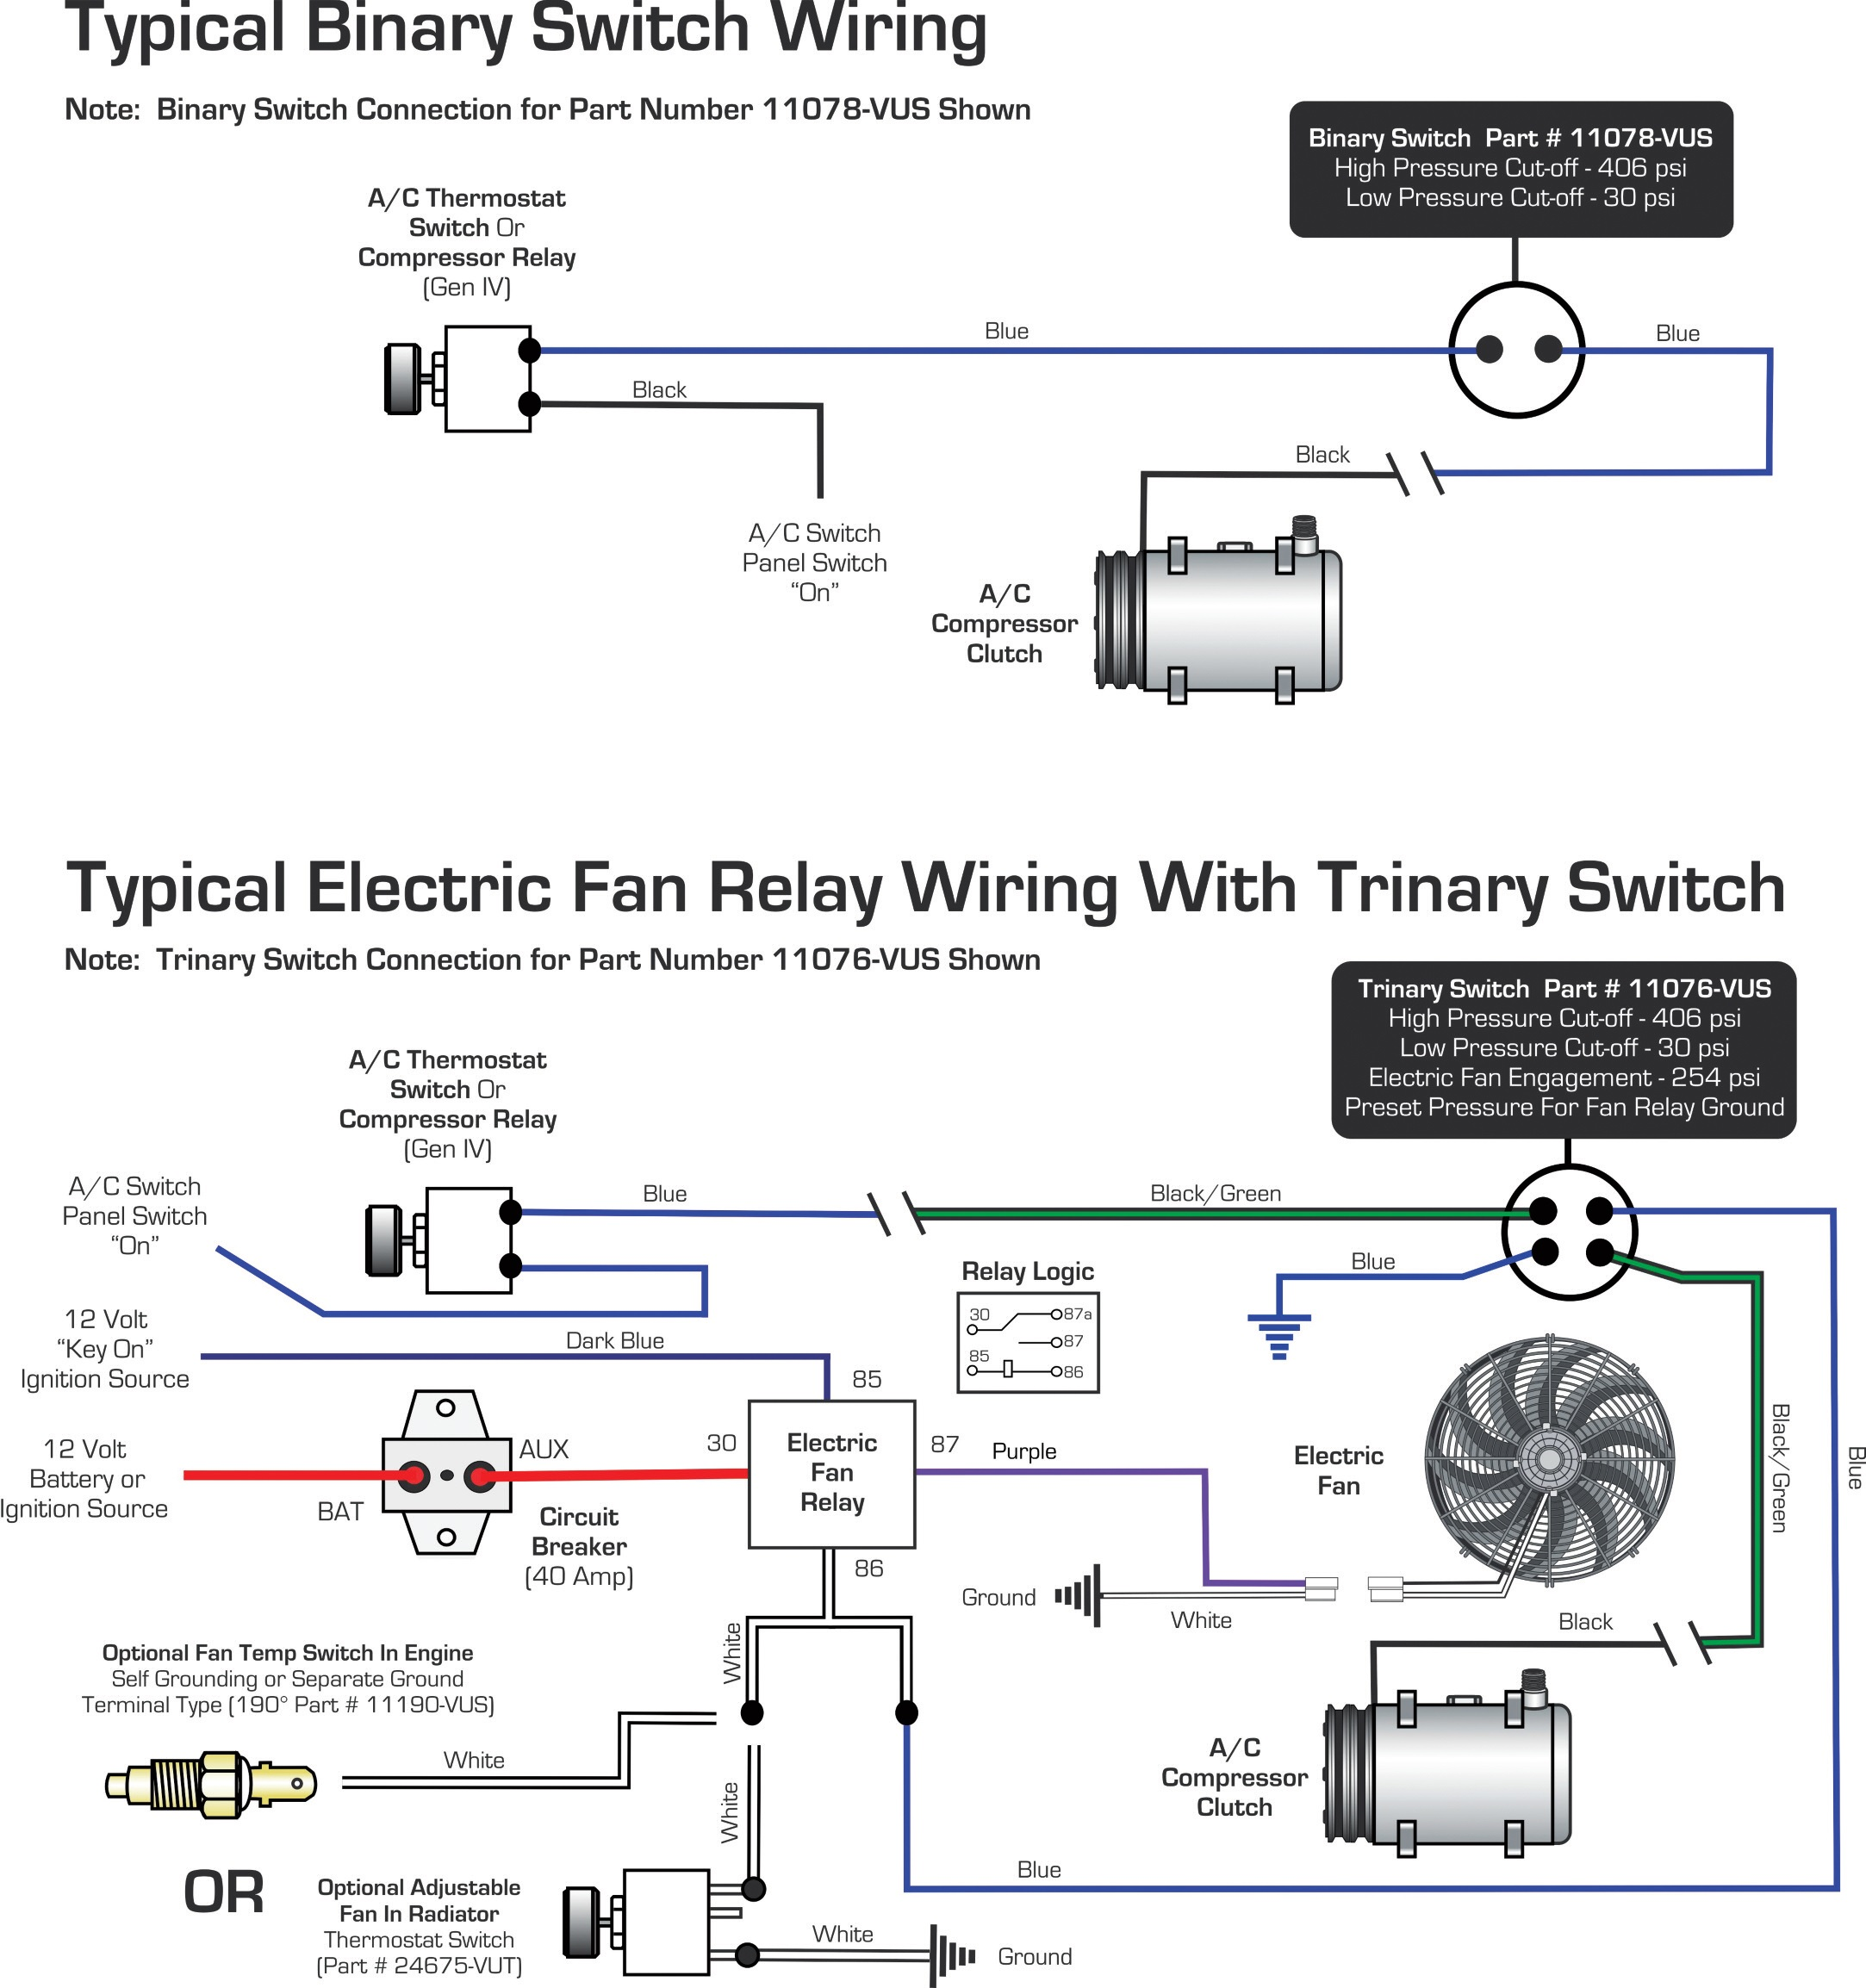 vintage air blog archive wiring diagrams binary switch trinary rh vintageair com Dual Fan Relay Wiring Diagram Thermostat Wiring Diagram